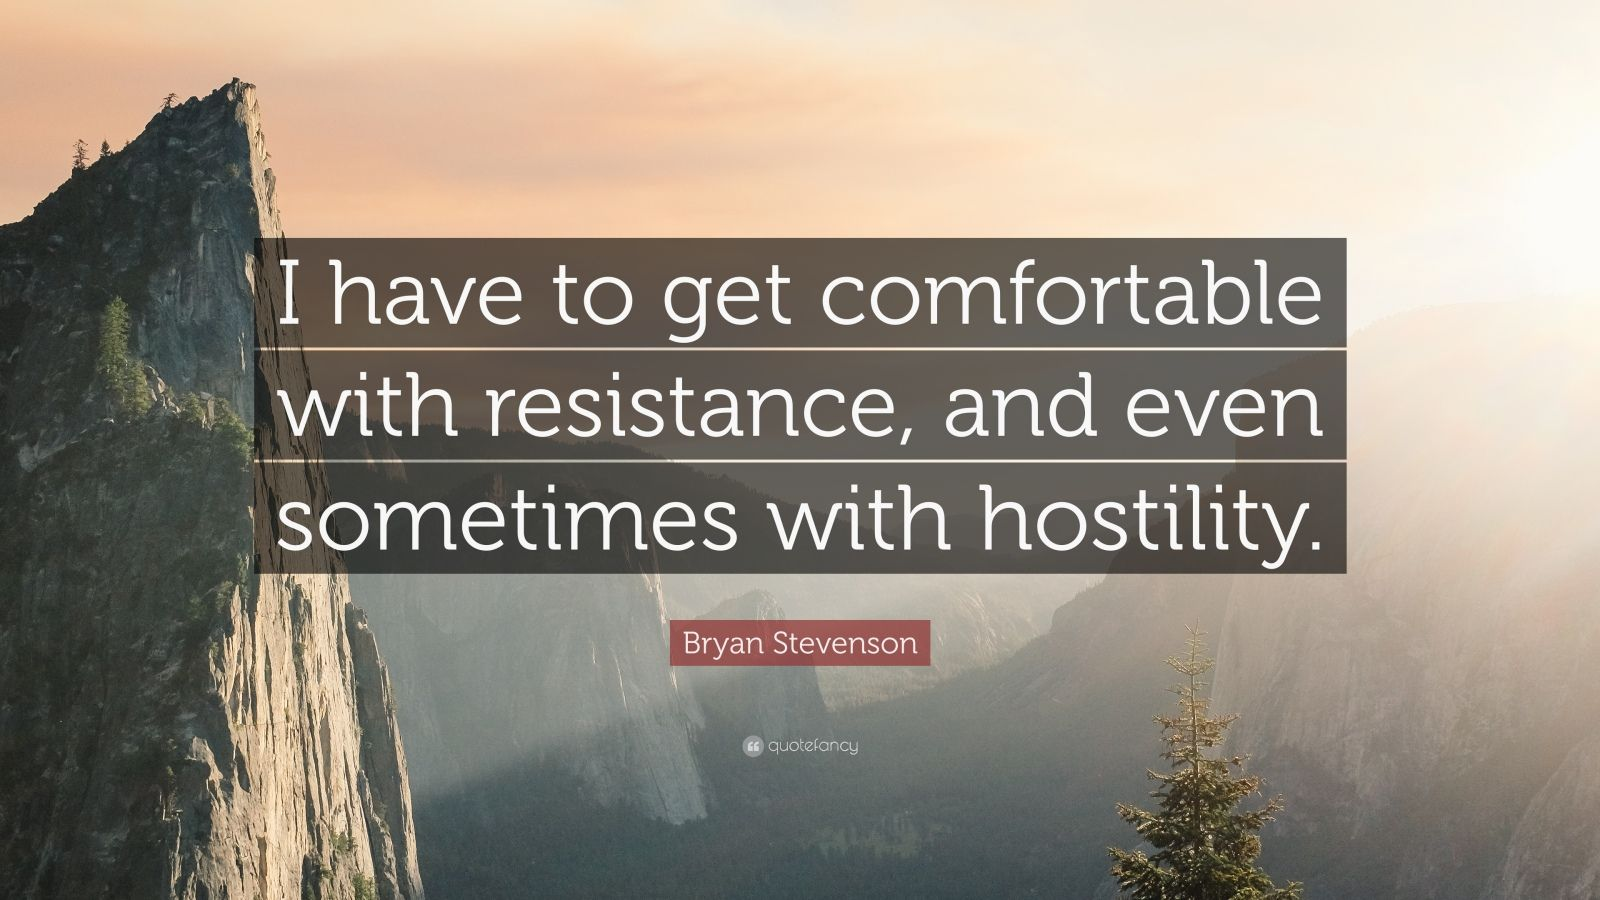 Bryan Stevenson Quotes (49 wallpapers) - Quotefancy